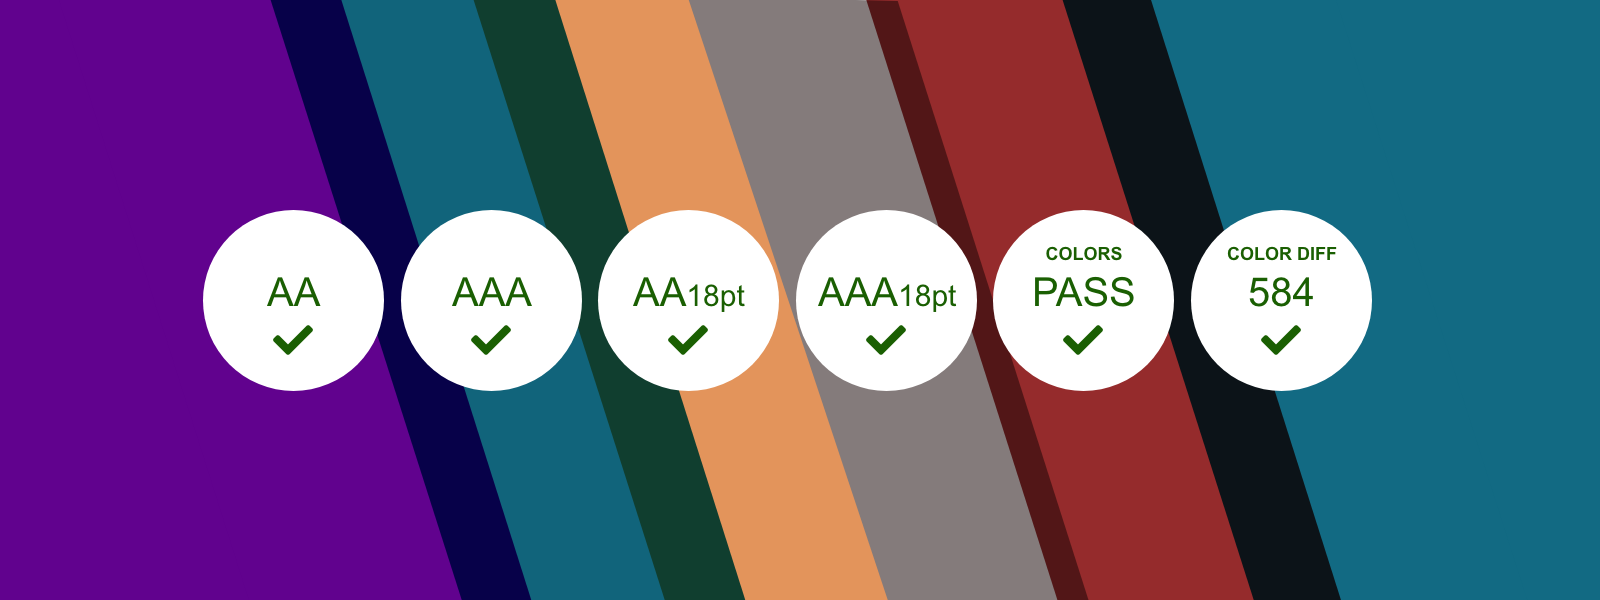 Colors labeled according to user accessibility